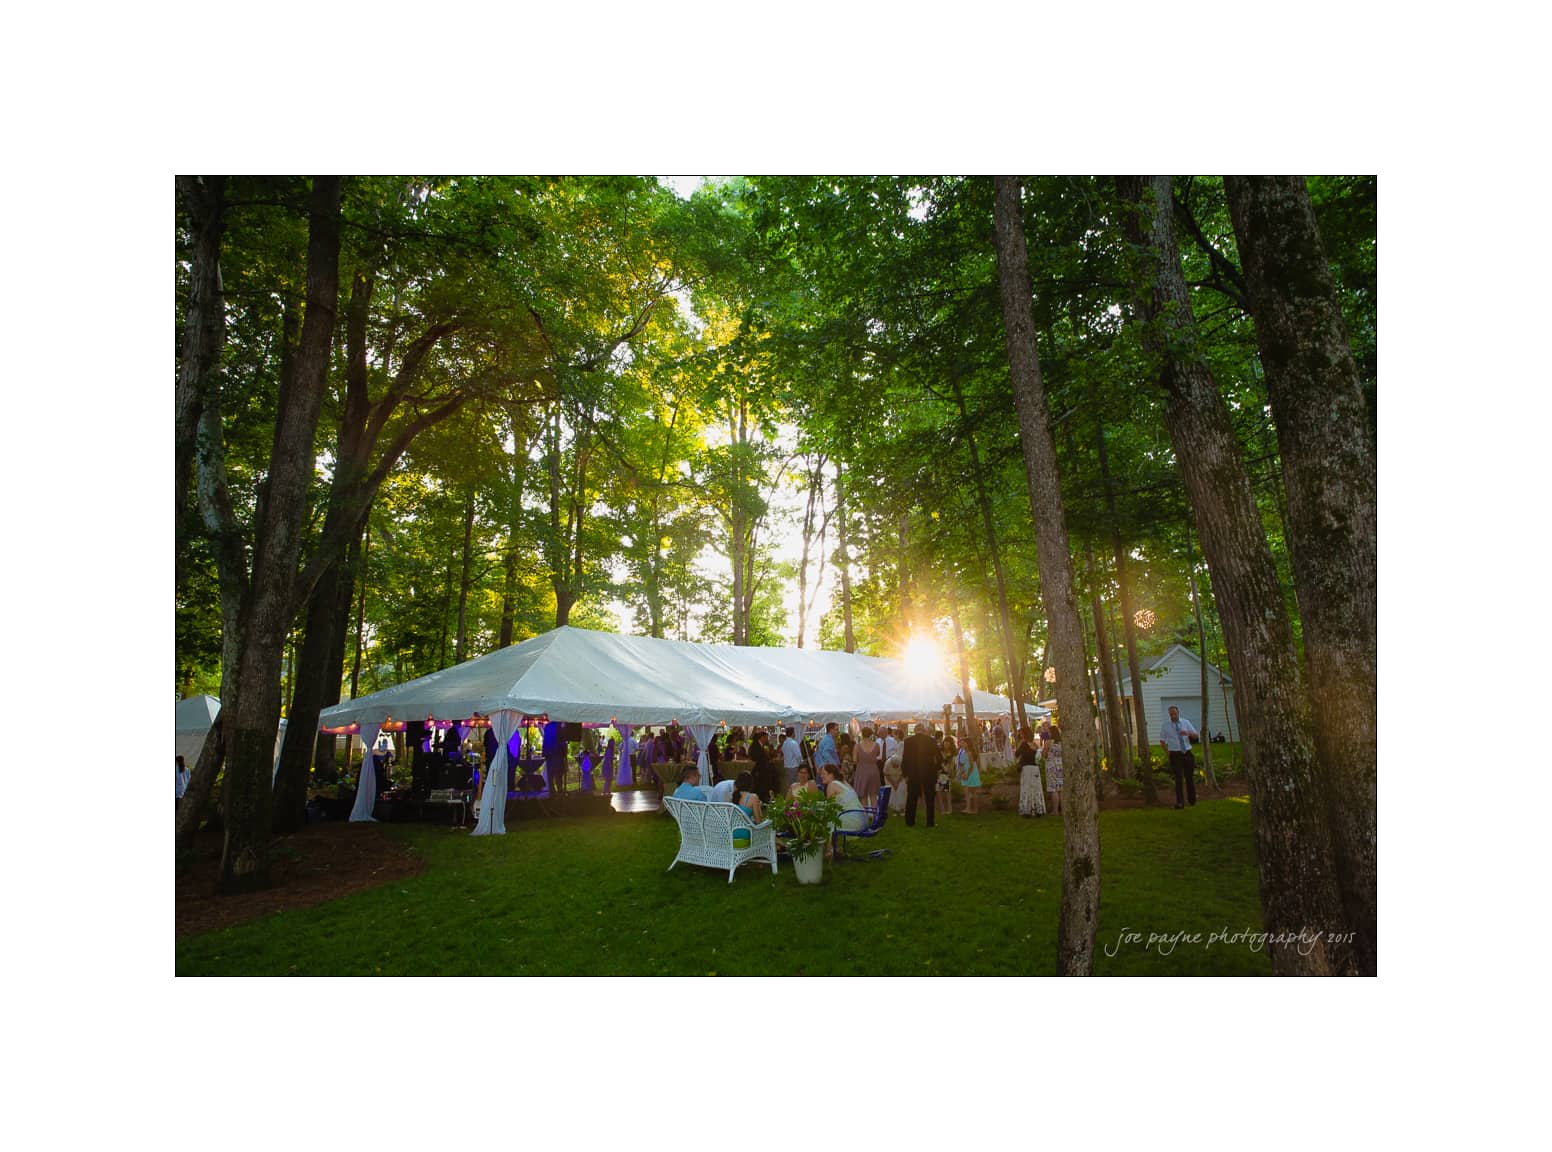 nc wedding photographer backyard reception tent exterior at sunset